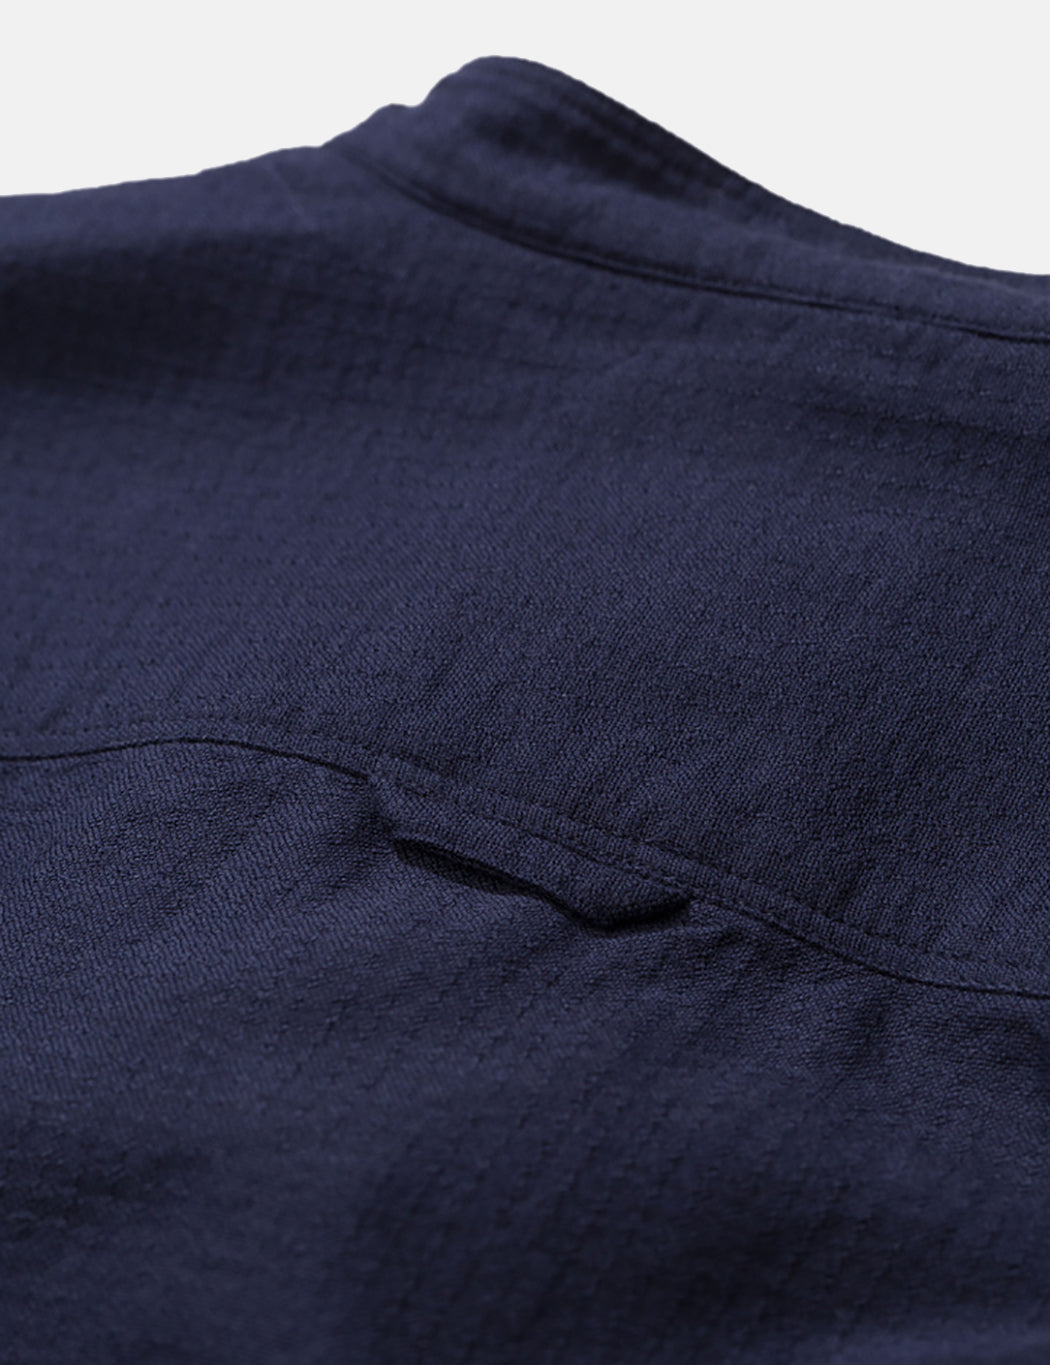 Norse Projects Hans Grandad Ripstop Shirt - Dark Navy Blue